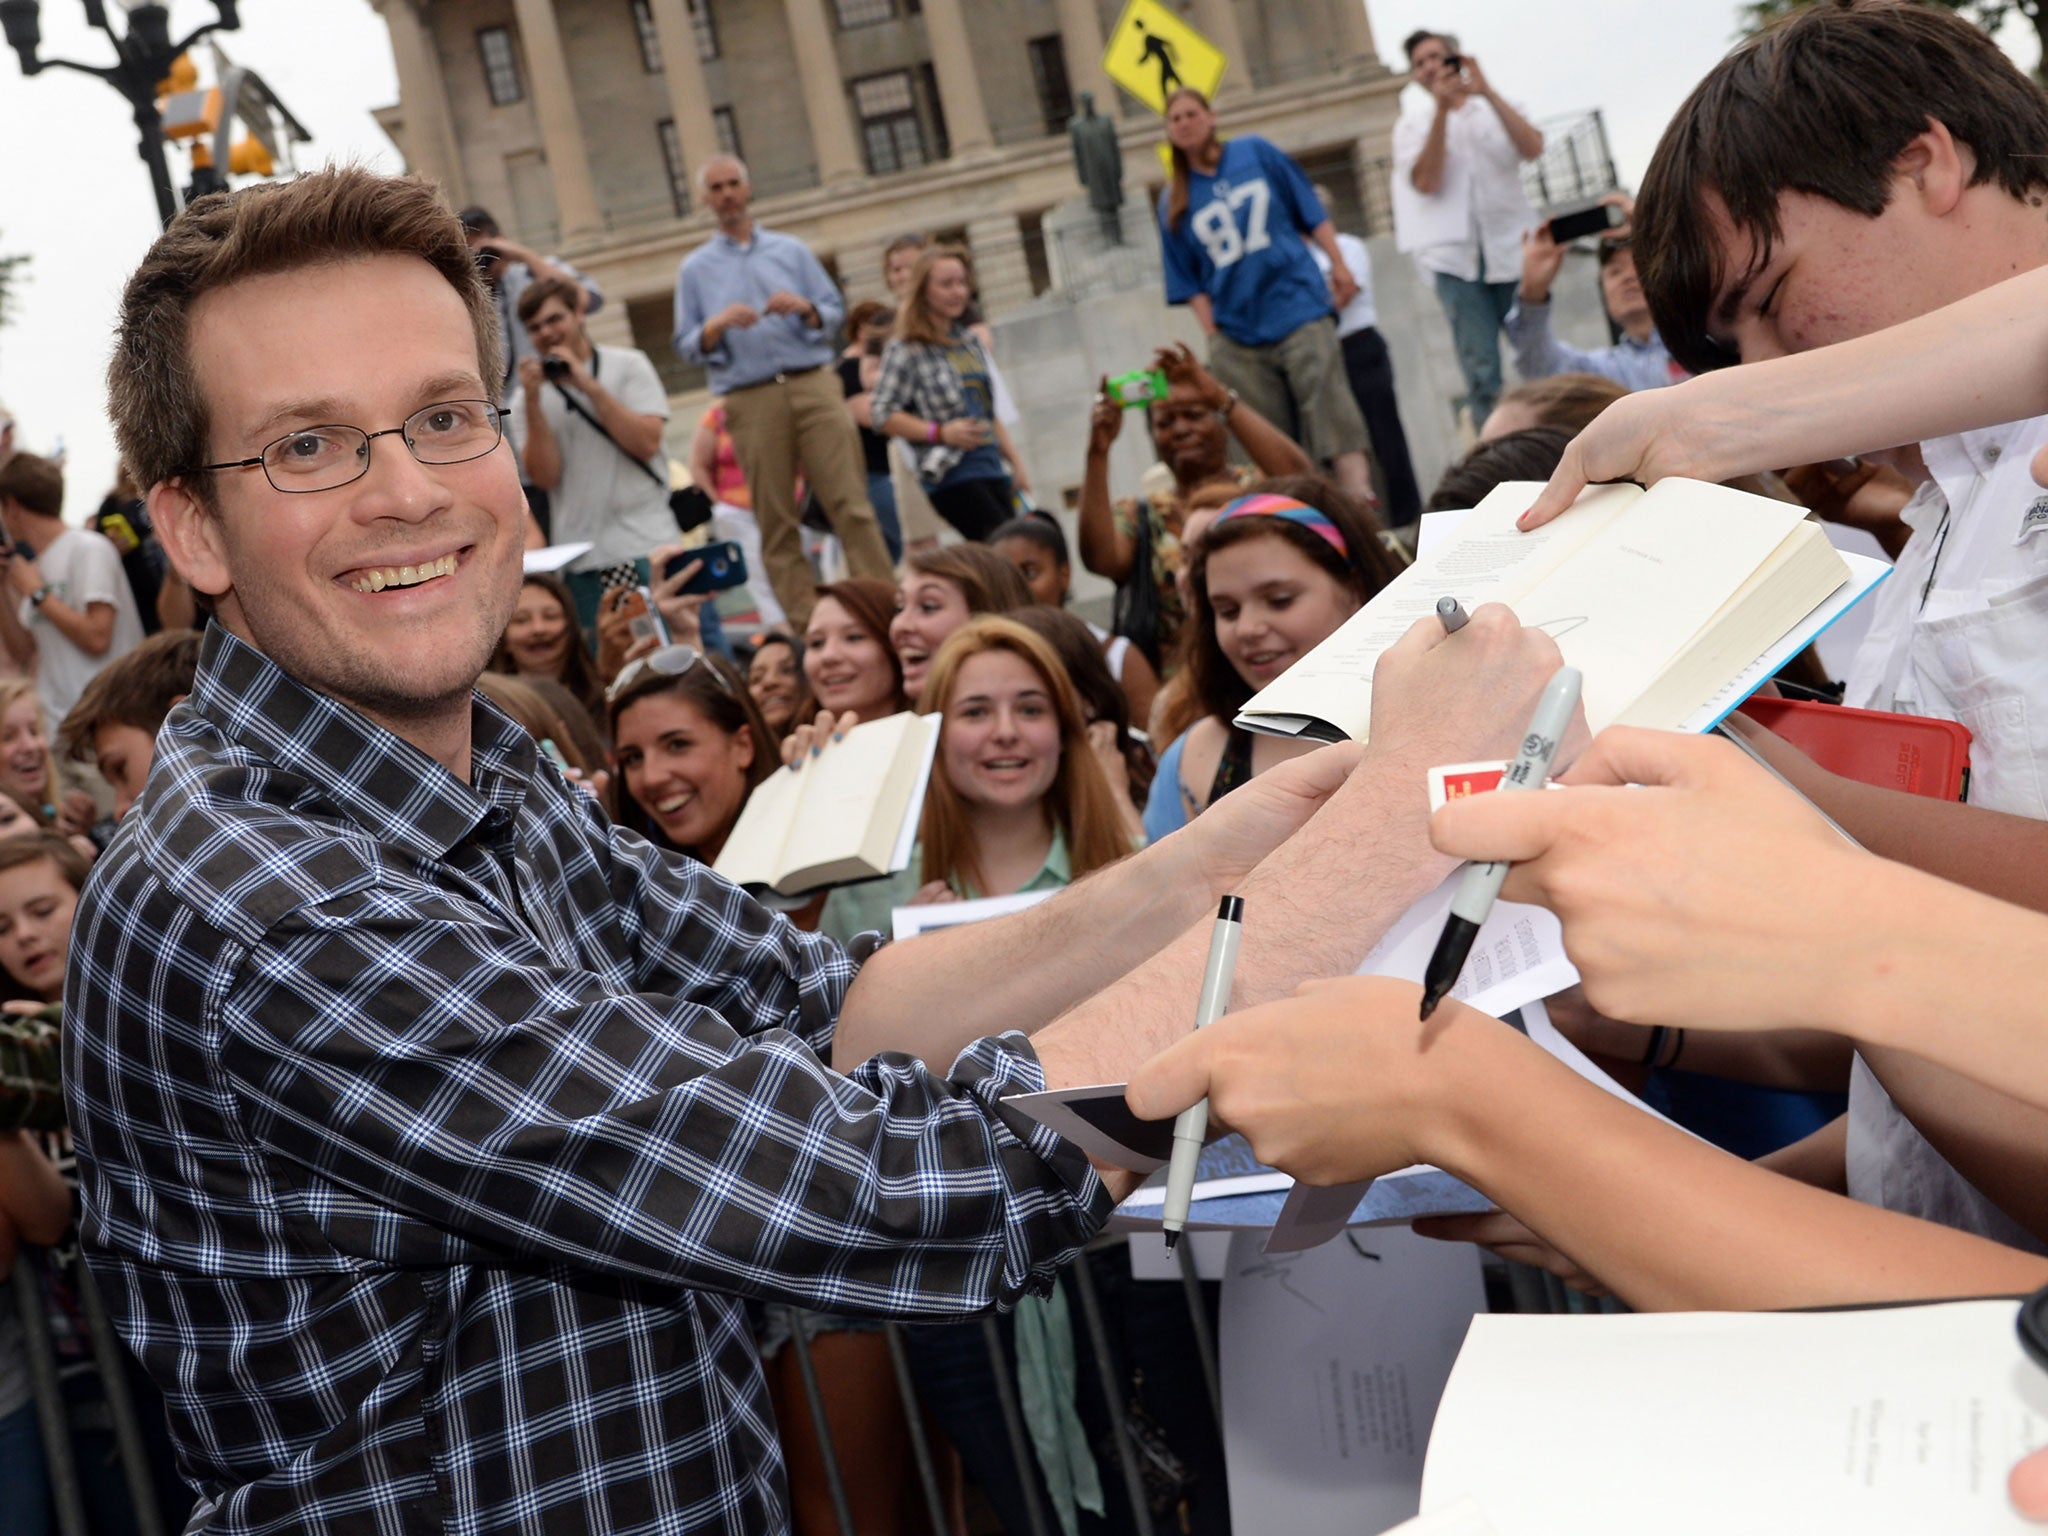 Fault in our Stars author John Green praised by fans for talking honestly about dealing with mental illness